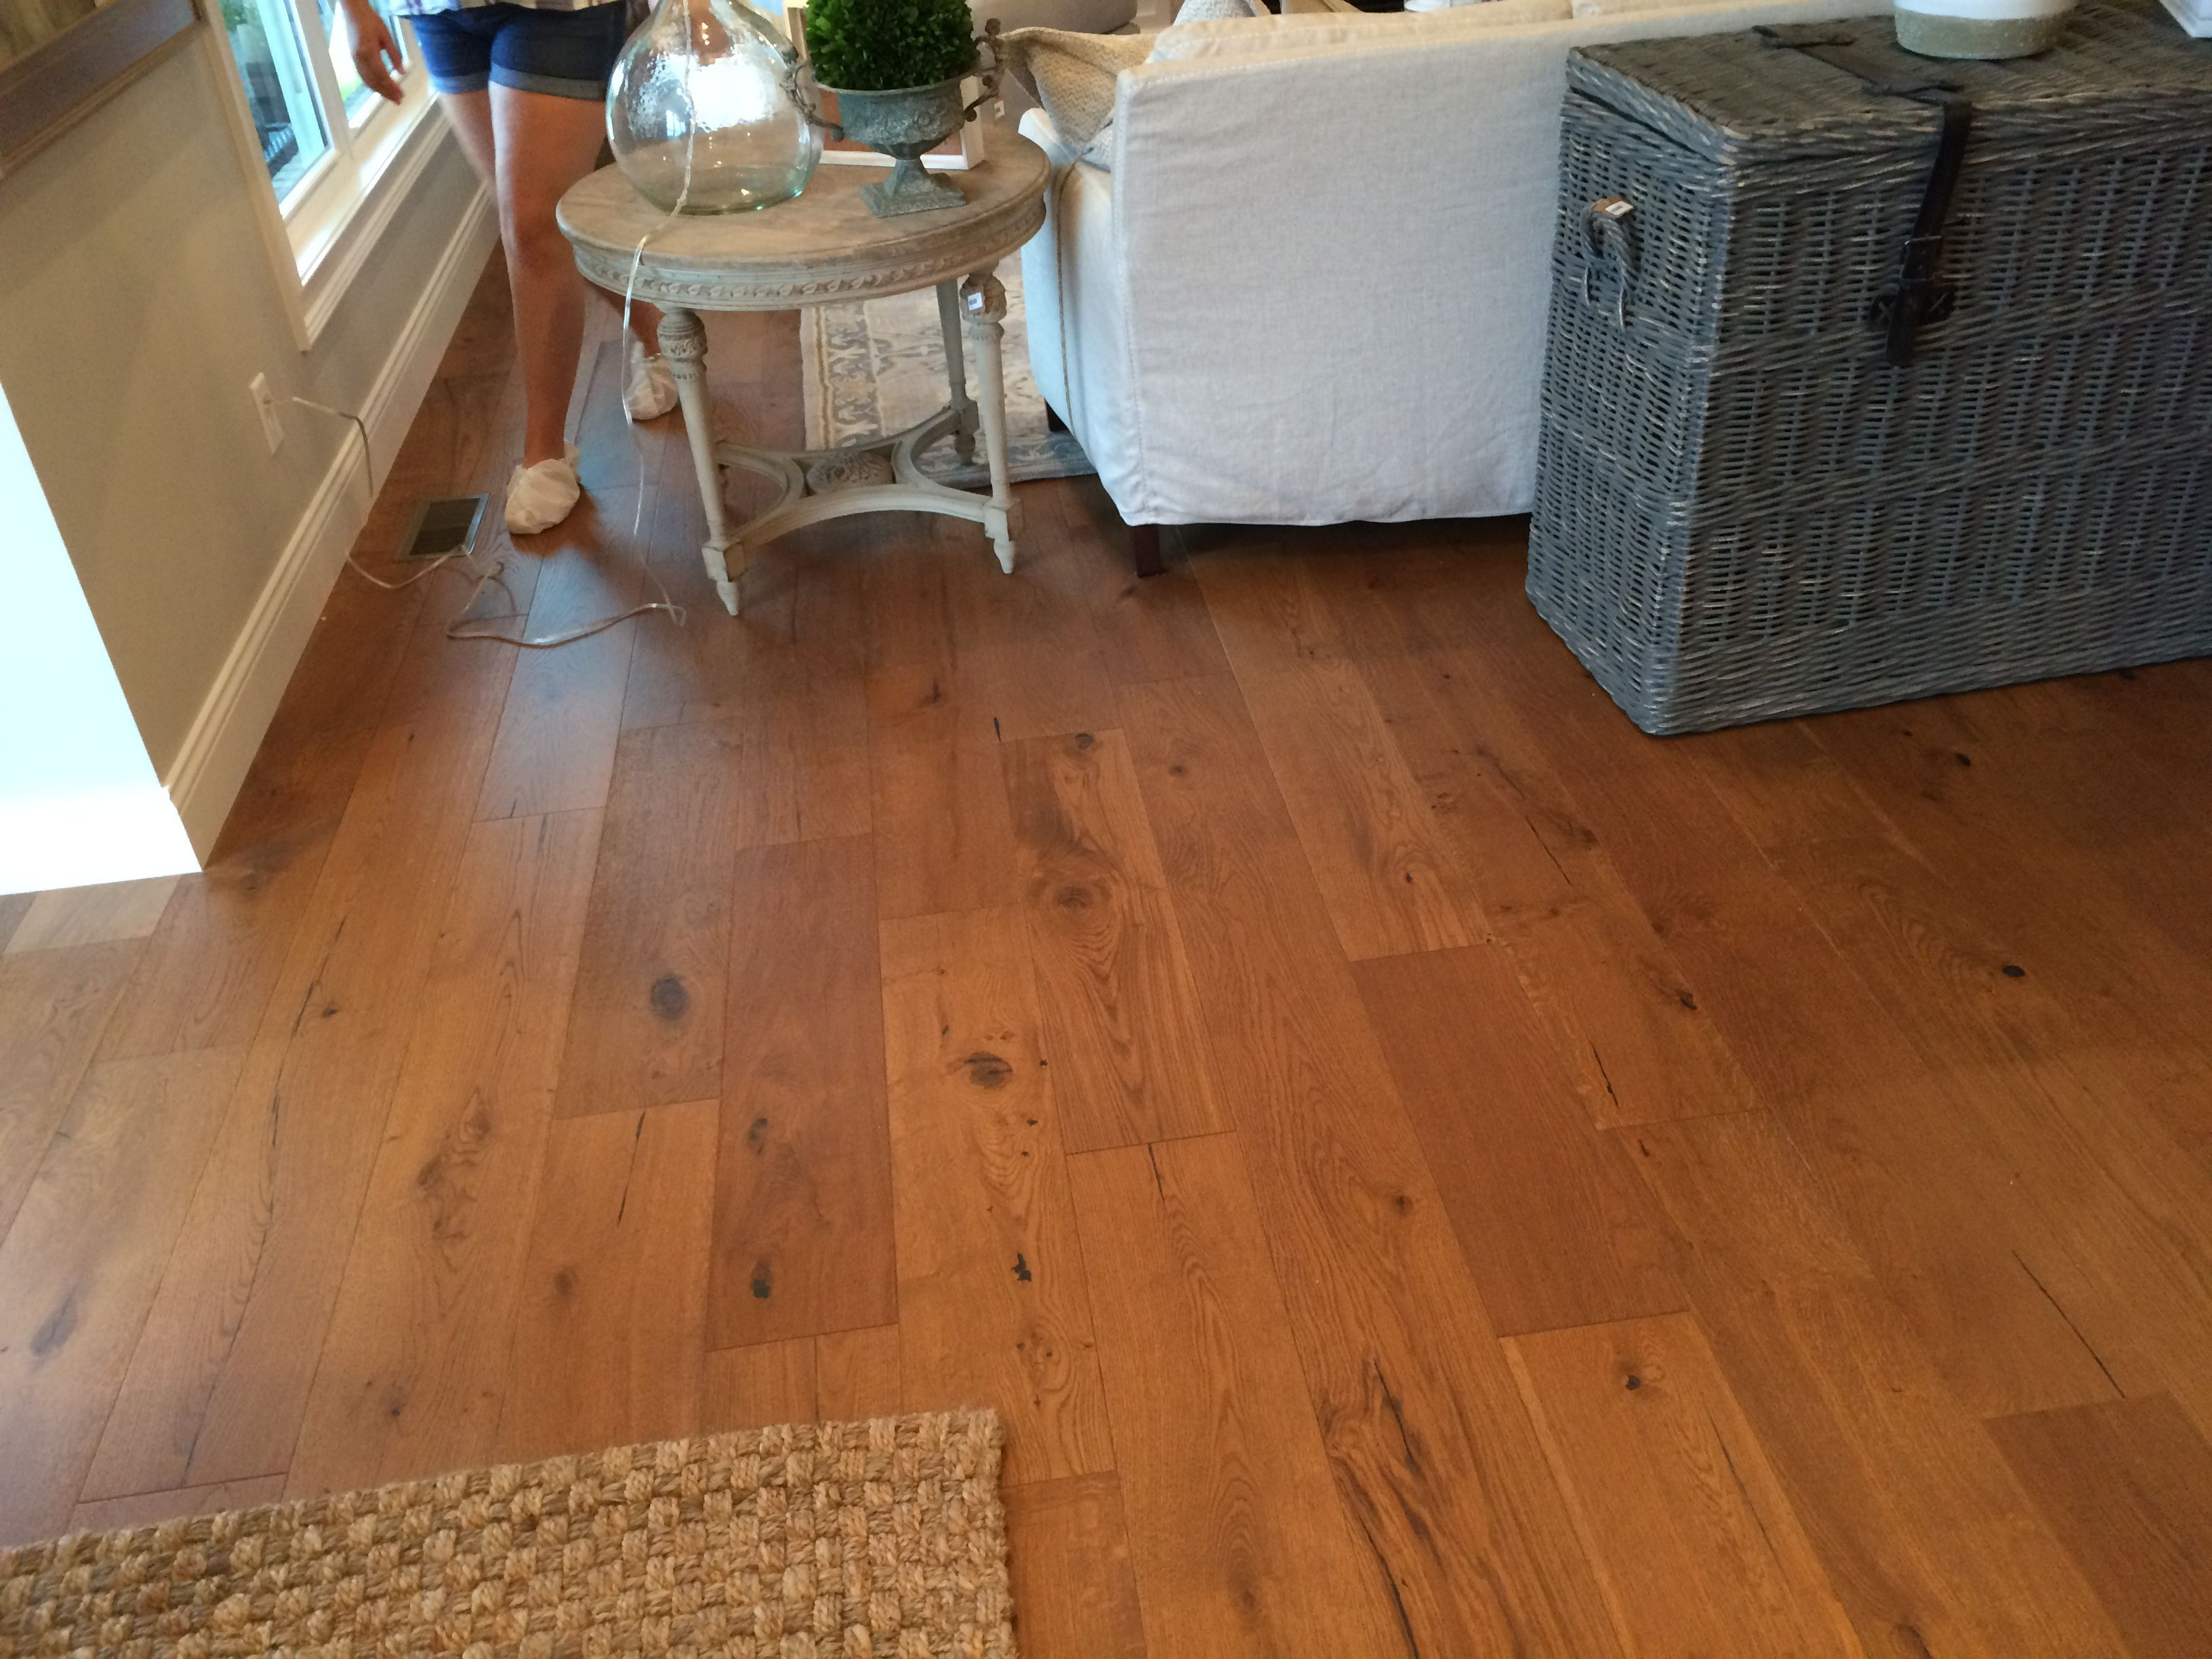 Flooring eclectic hardwood flooring boston by paris ceramics - Andalusia Oak By Paramount Andalusiaflooring